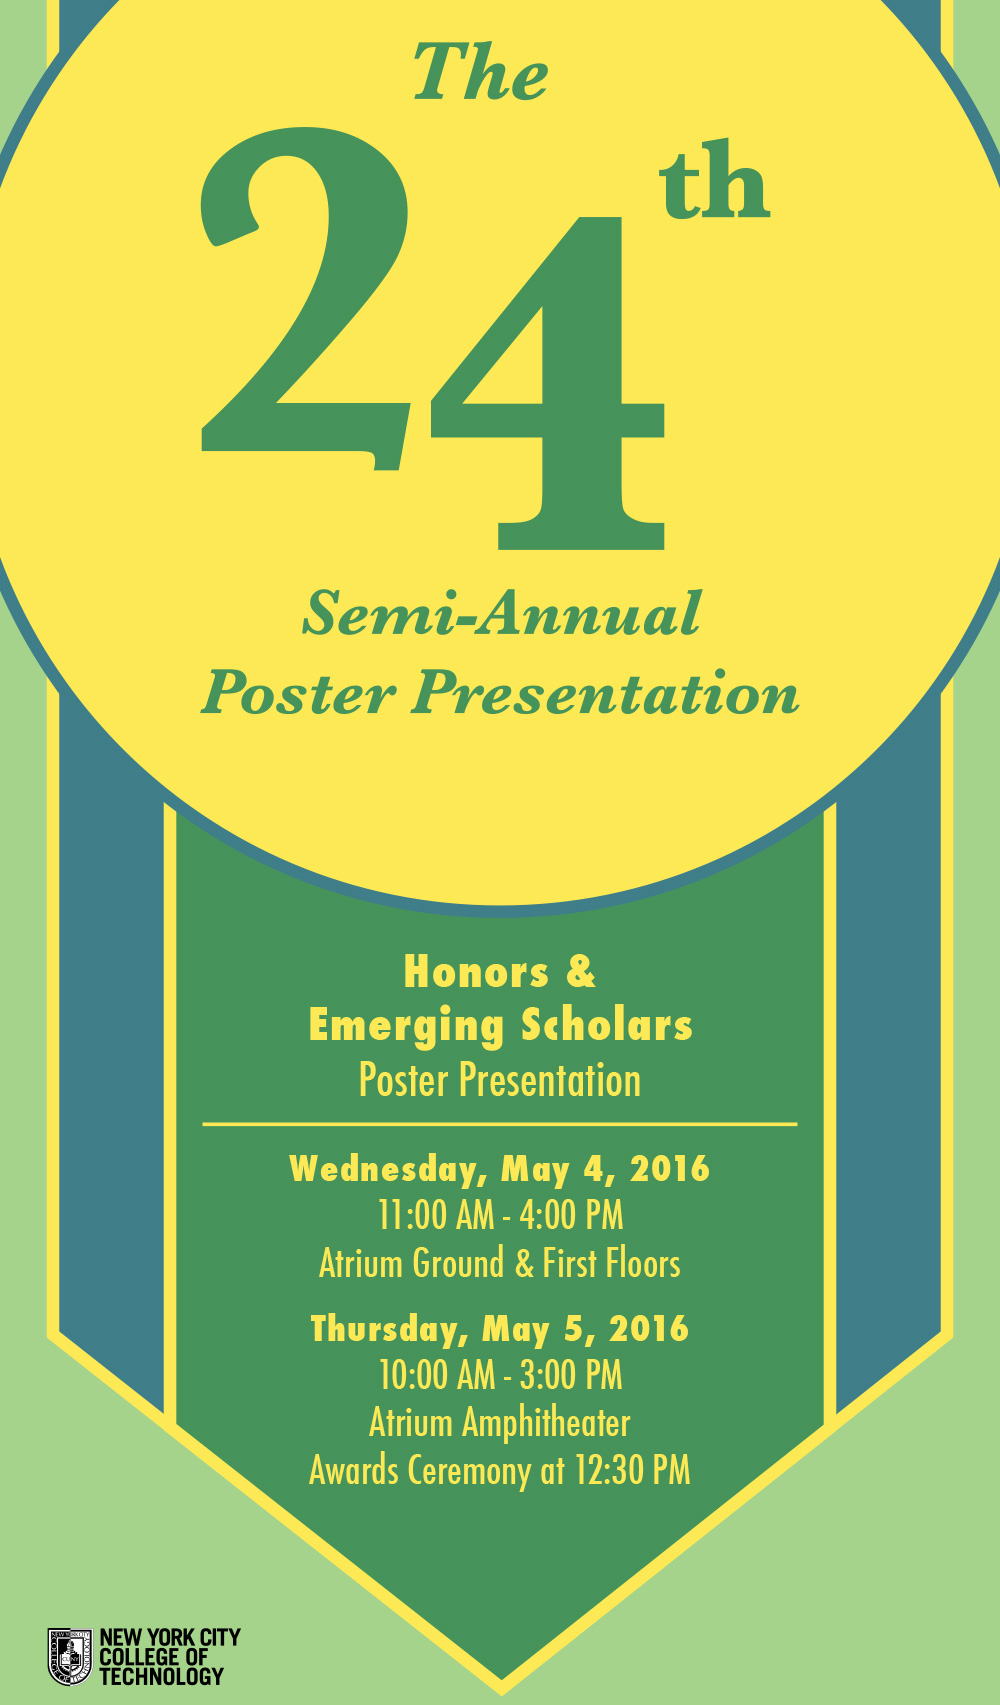 FC_HonorsScholars_PosterPresentationPoster_Spring2016_F_W